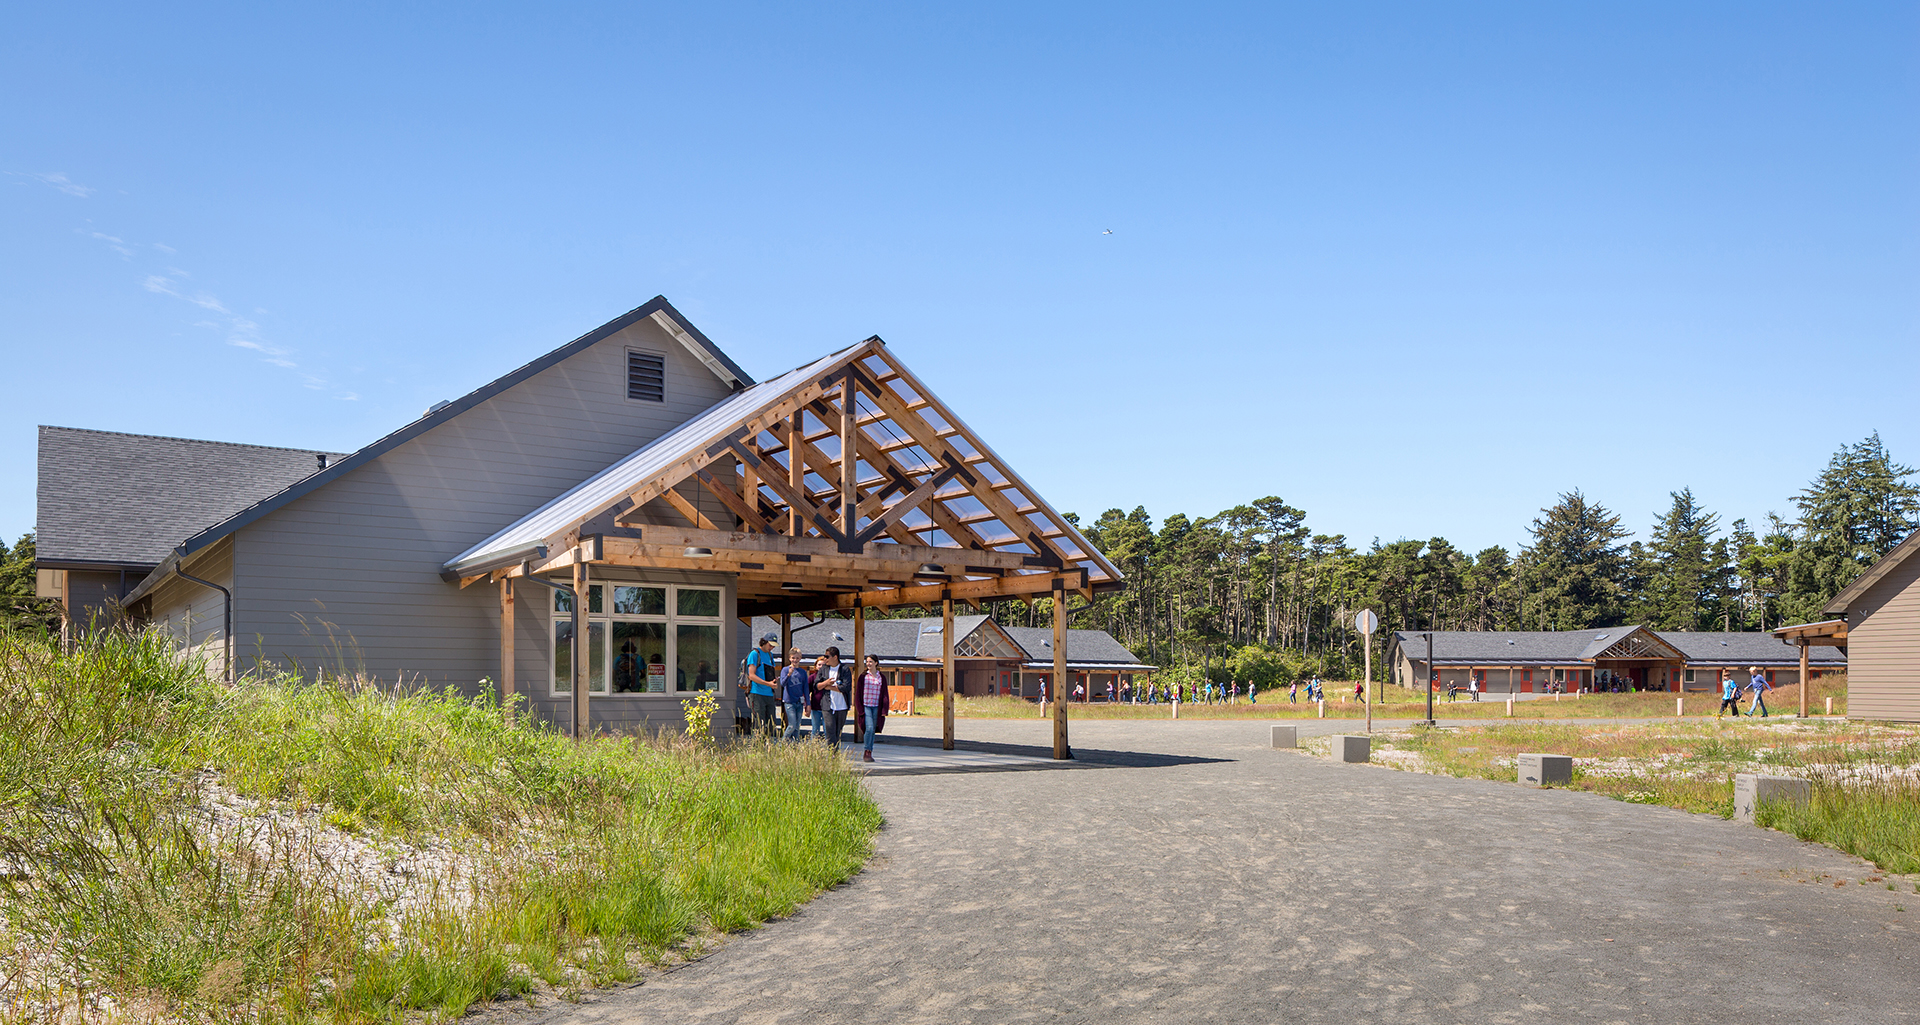 Coastal Discovery Center | Oregon Museum of Science & Industry (OMSI) | Photos by Josh Partee